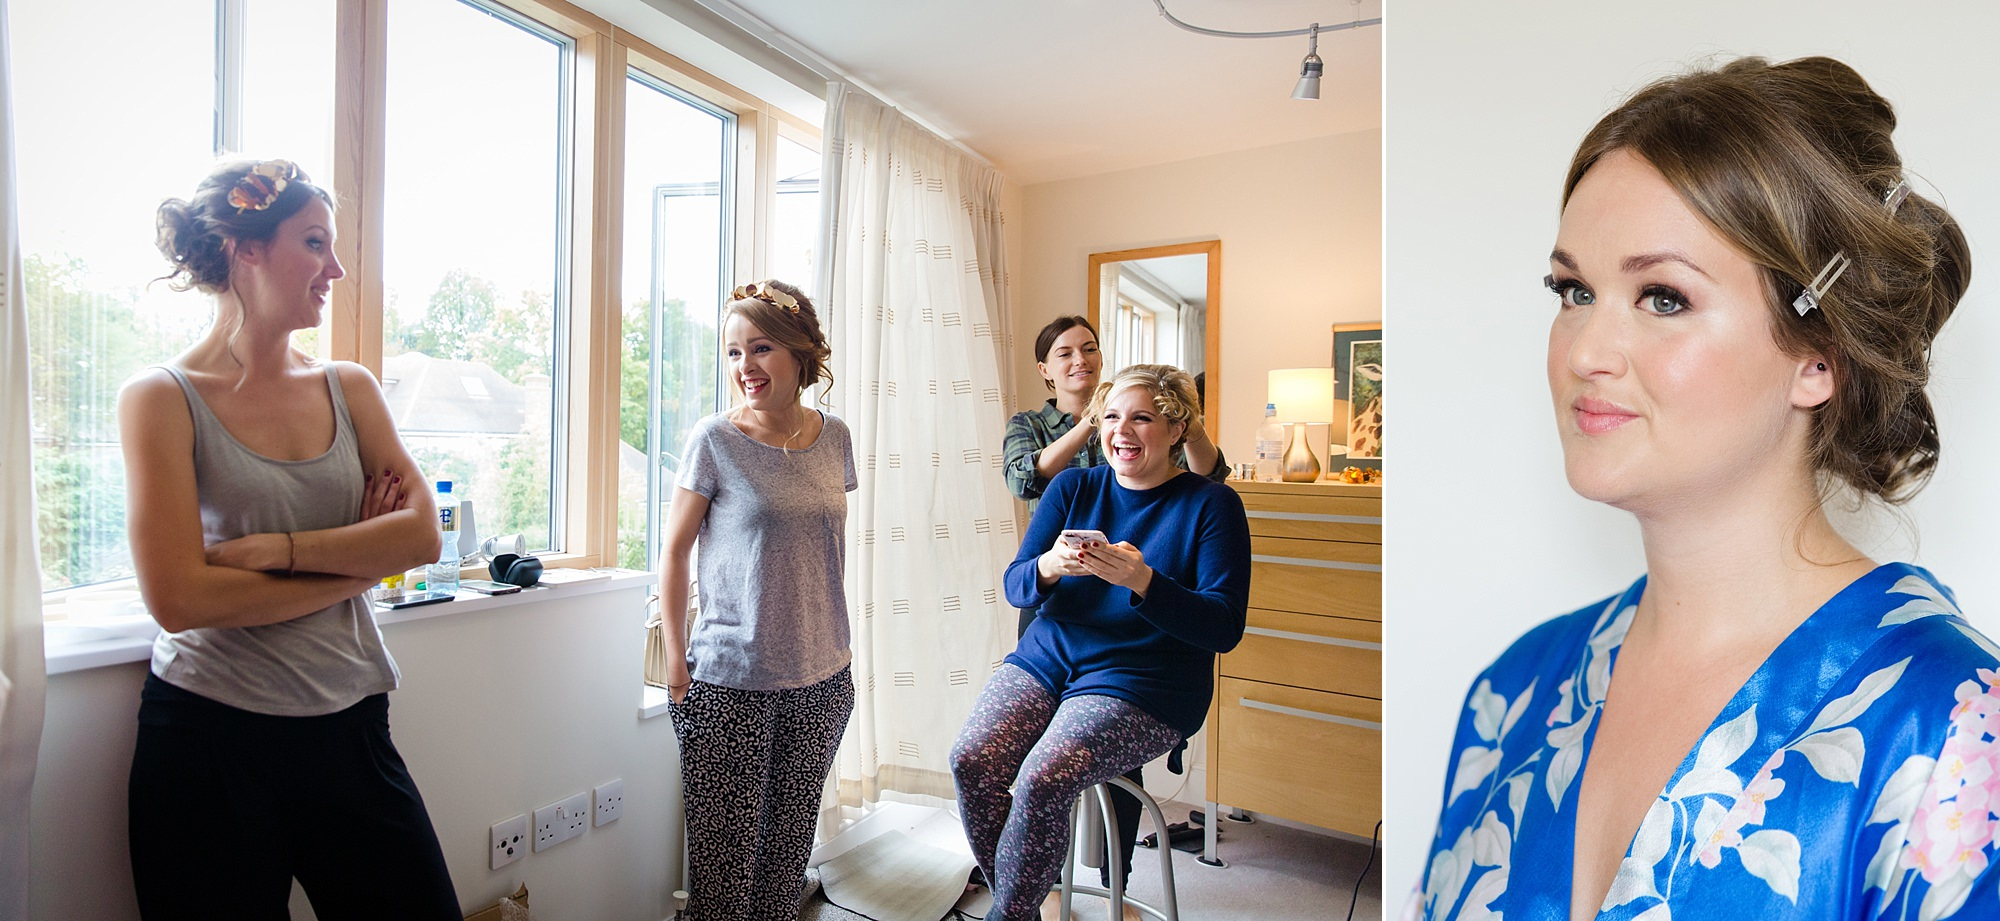 Fun London Wedding portrait of bride and bridesmaids laughing as she gets ready